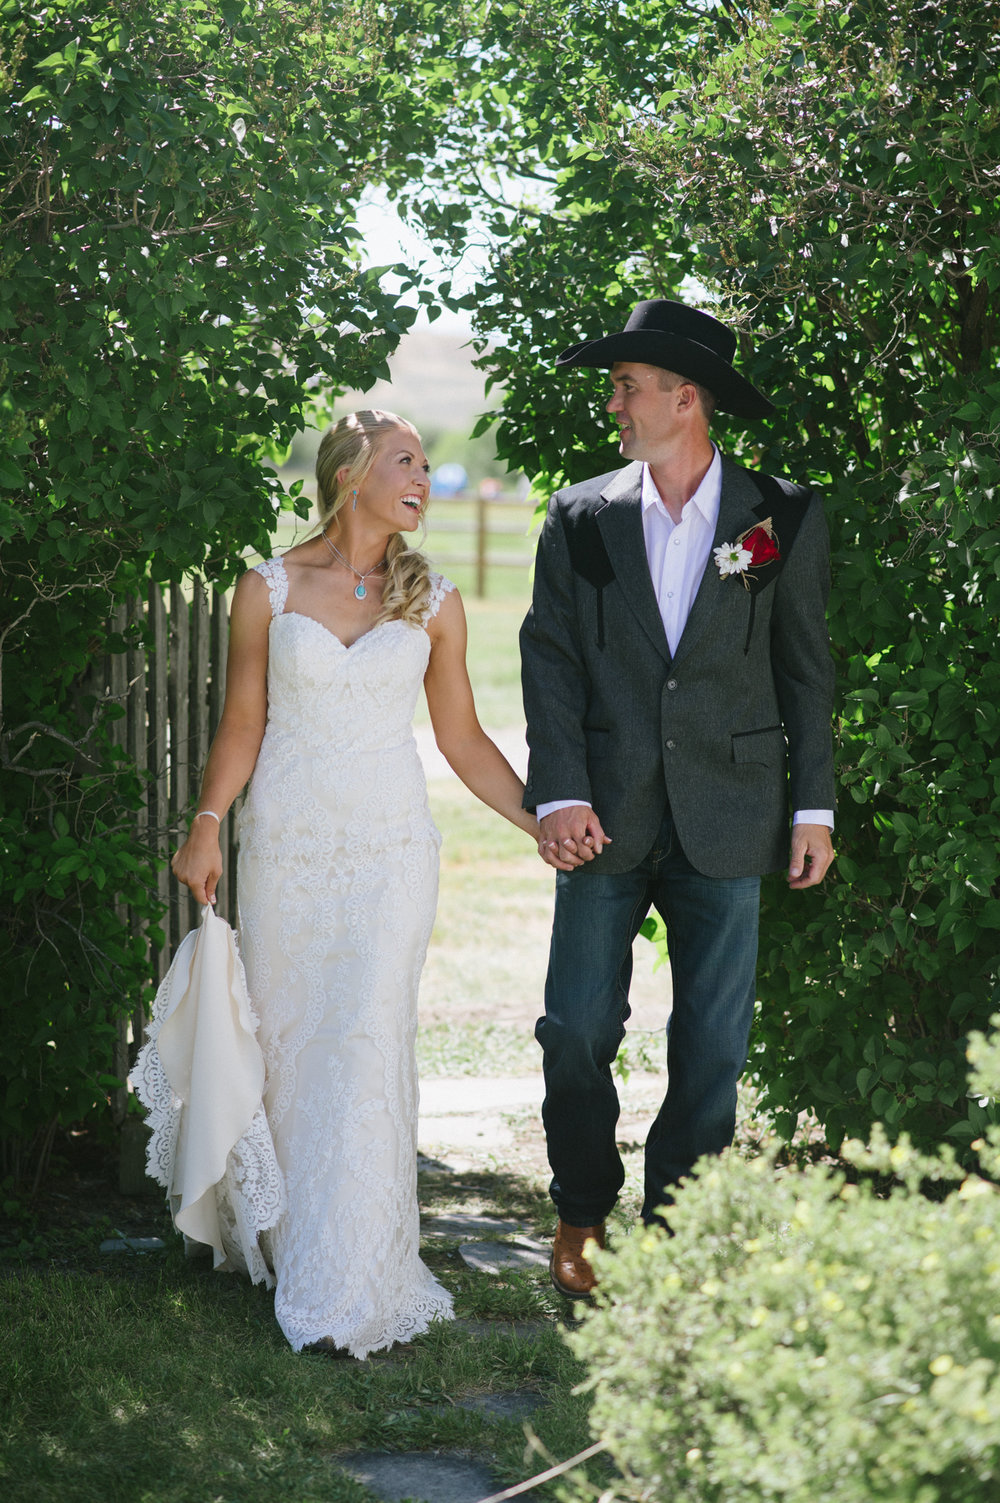 Erica Lind + Jeff Heim Wedding_Rustic Wedding_Montana Wedding_Kelsey Lane Photography-3887-2.jpg